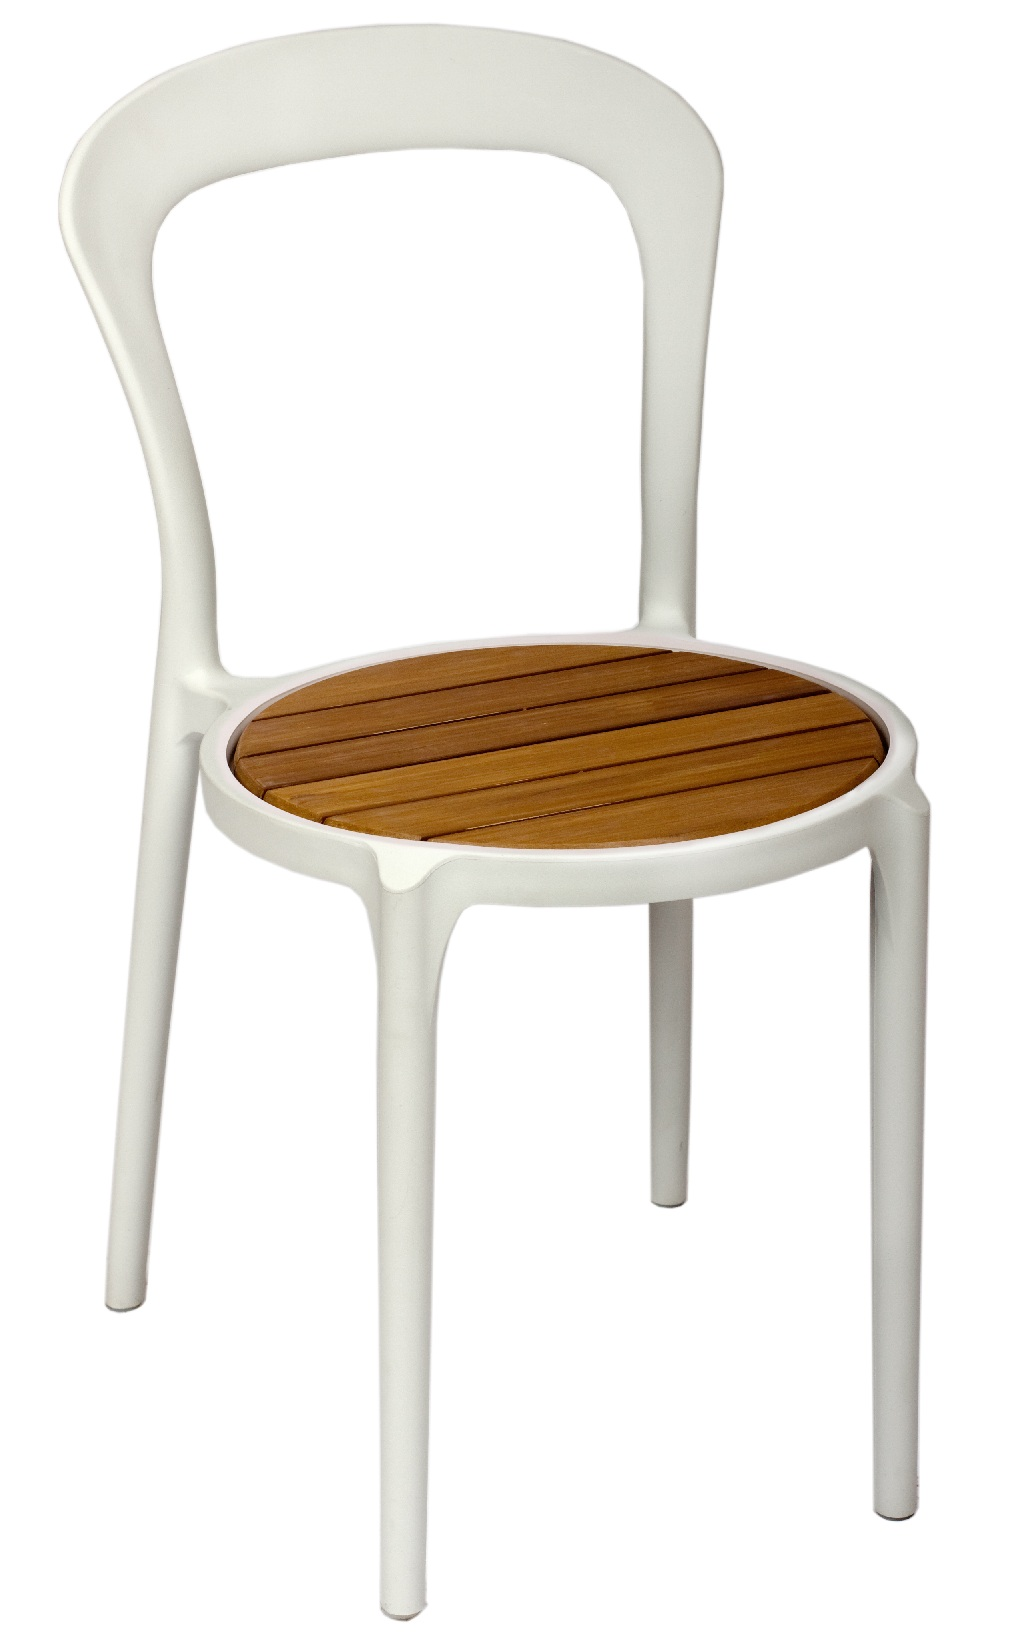 BFM Malibu Synthetic Teak Chair- White